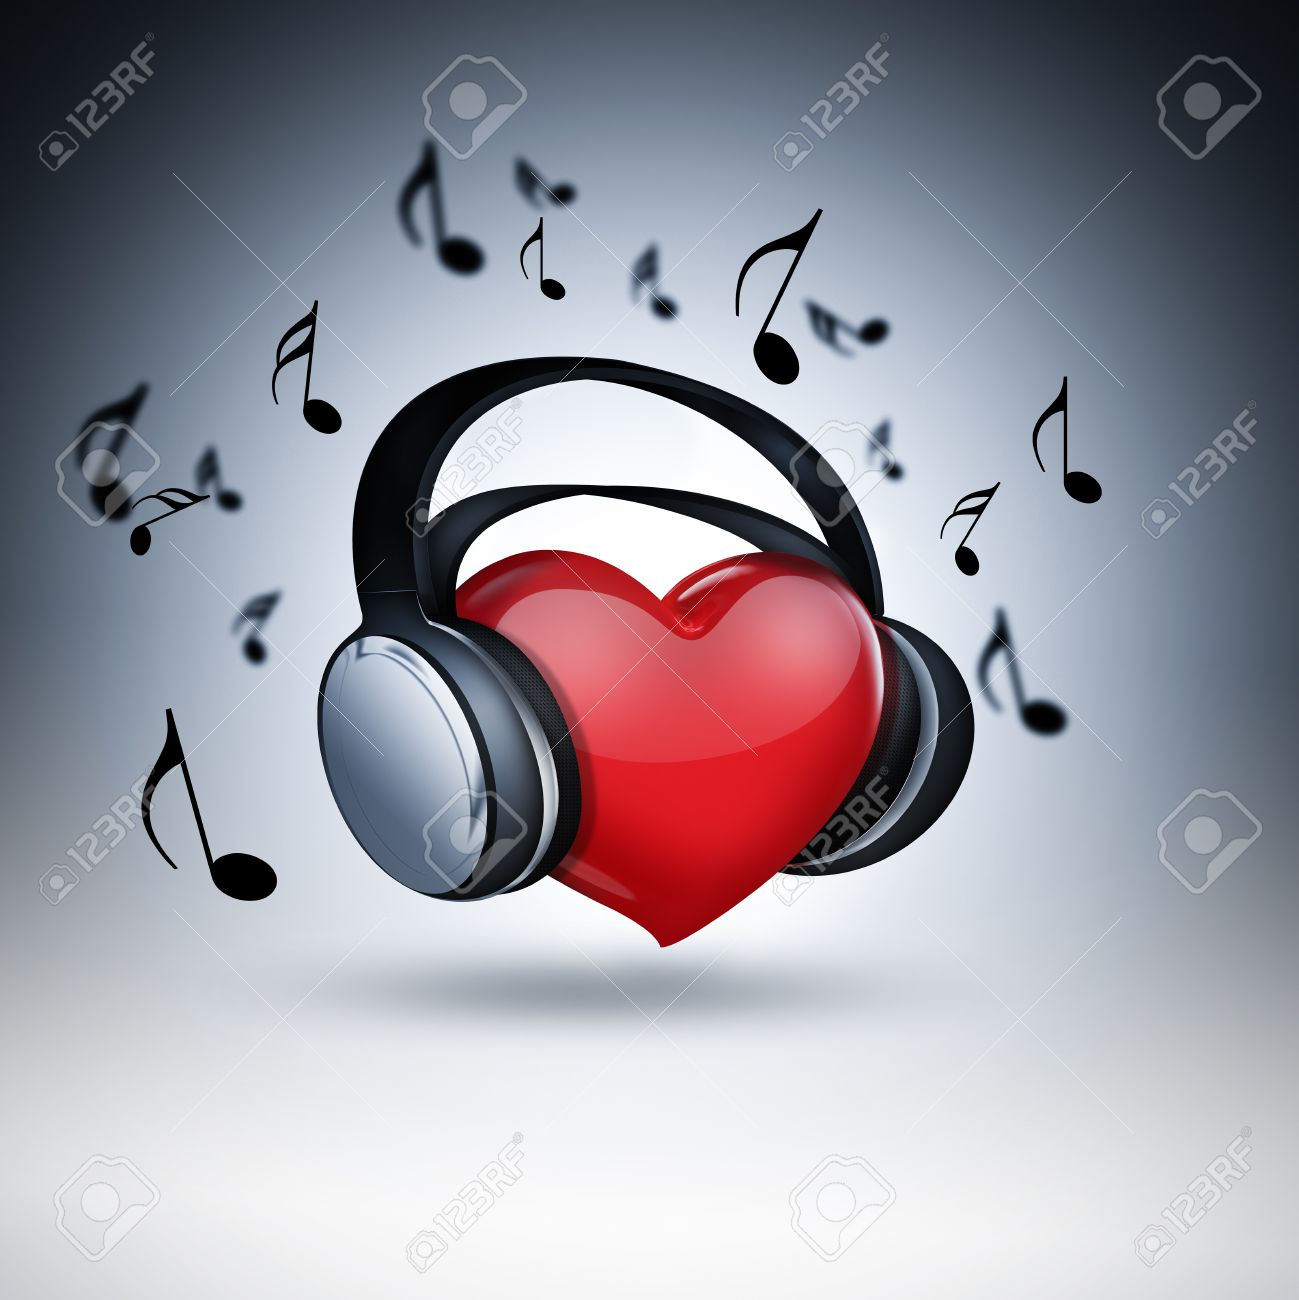 Image result for music lover